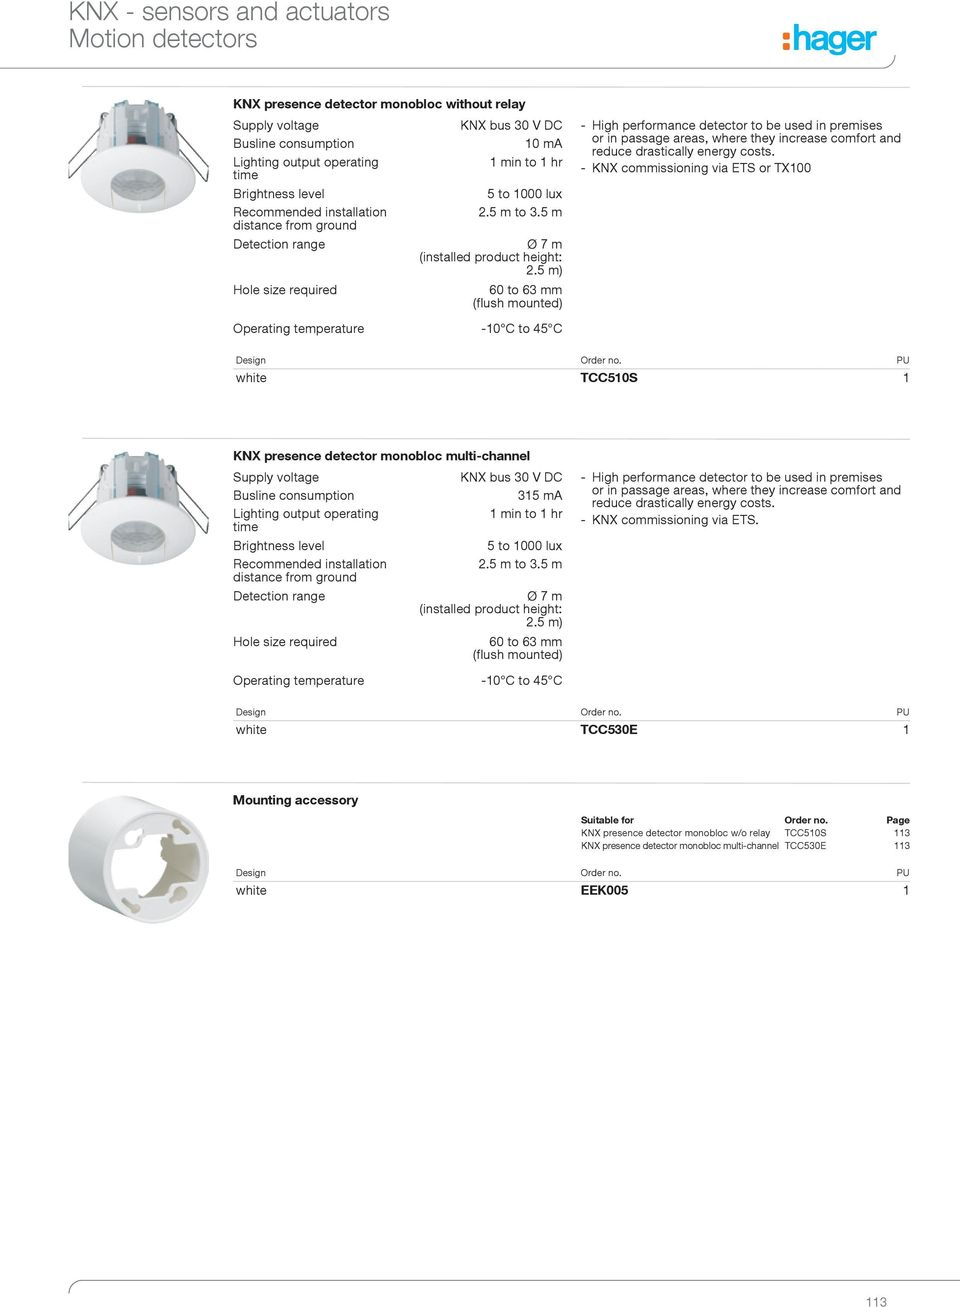 Knx Sensors And Actuators Pdf Lighting Wiring Diagram 5 M 60 To 63 Mm Flush Mounted High Performance Detector